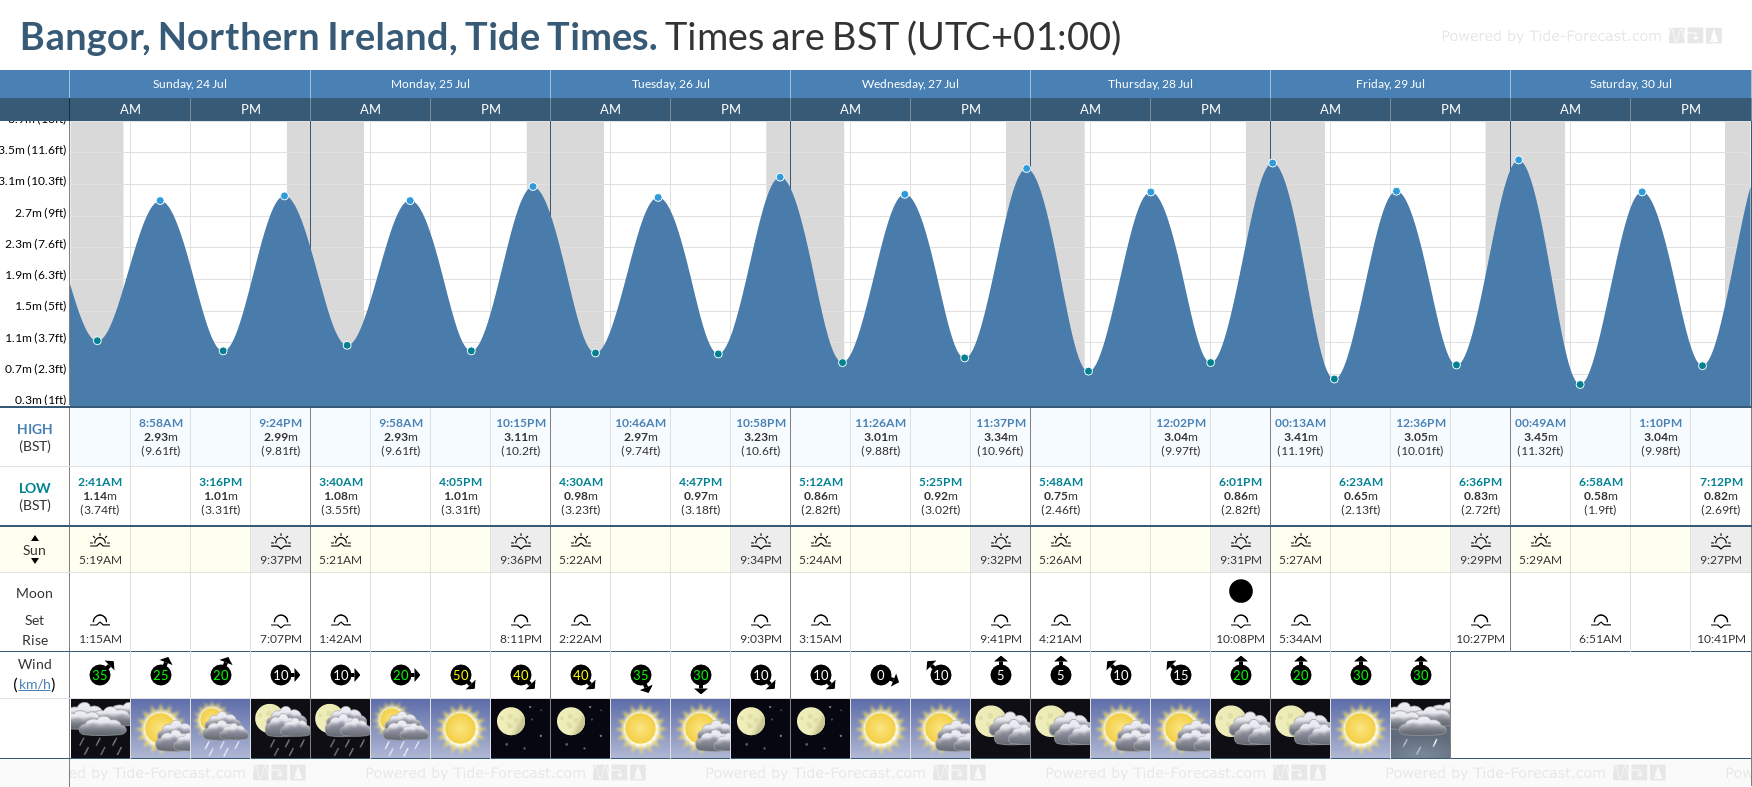 Bangor, Northern Ireland Tide Chart including high and low tide tide times for the next 7 days